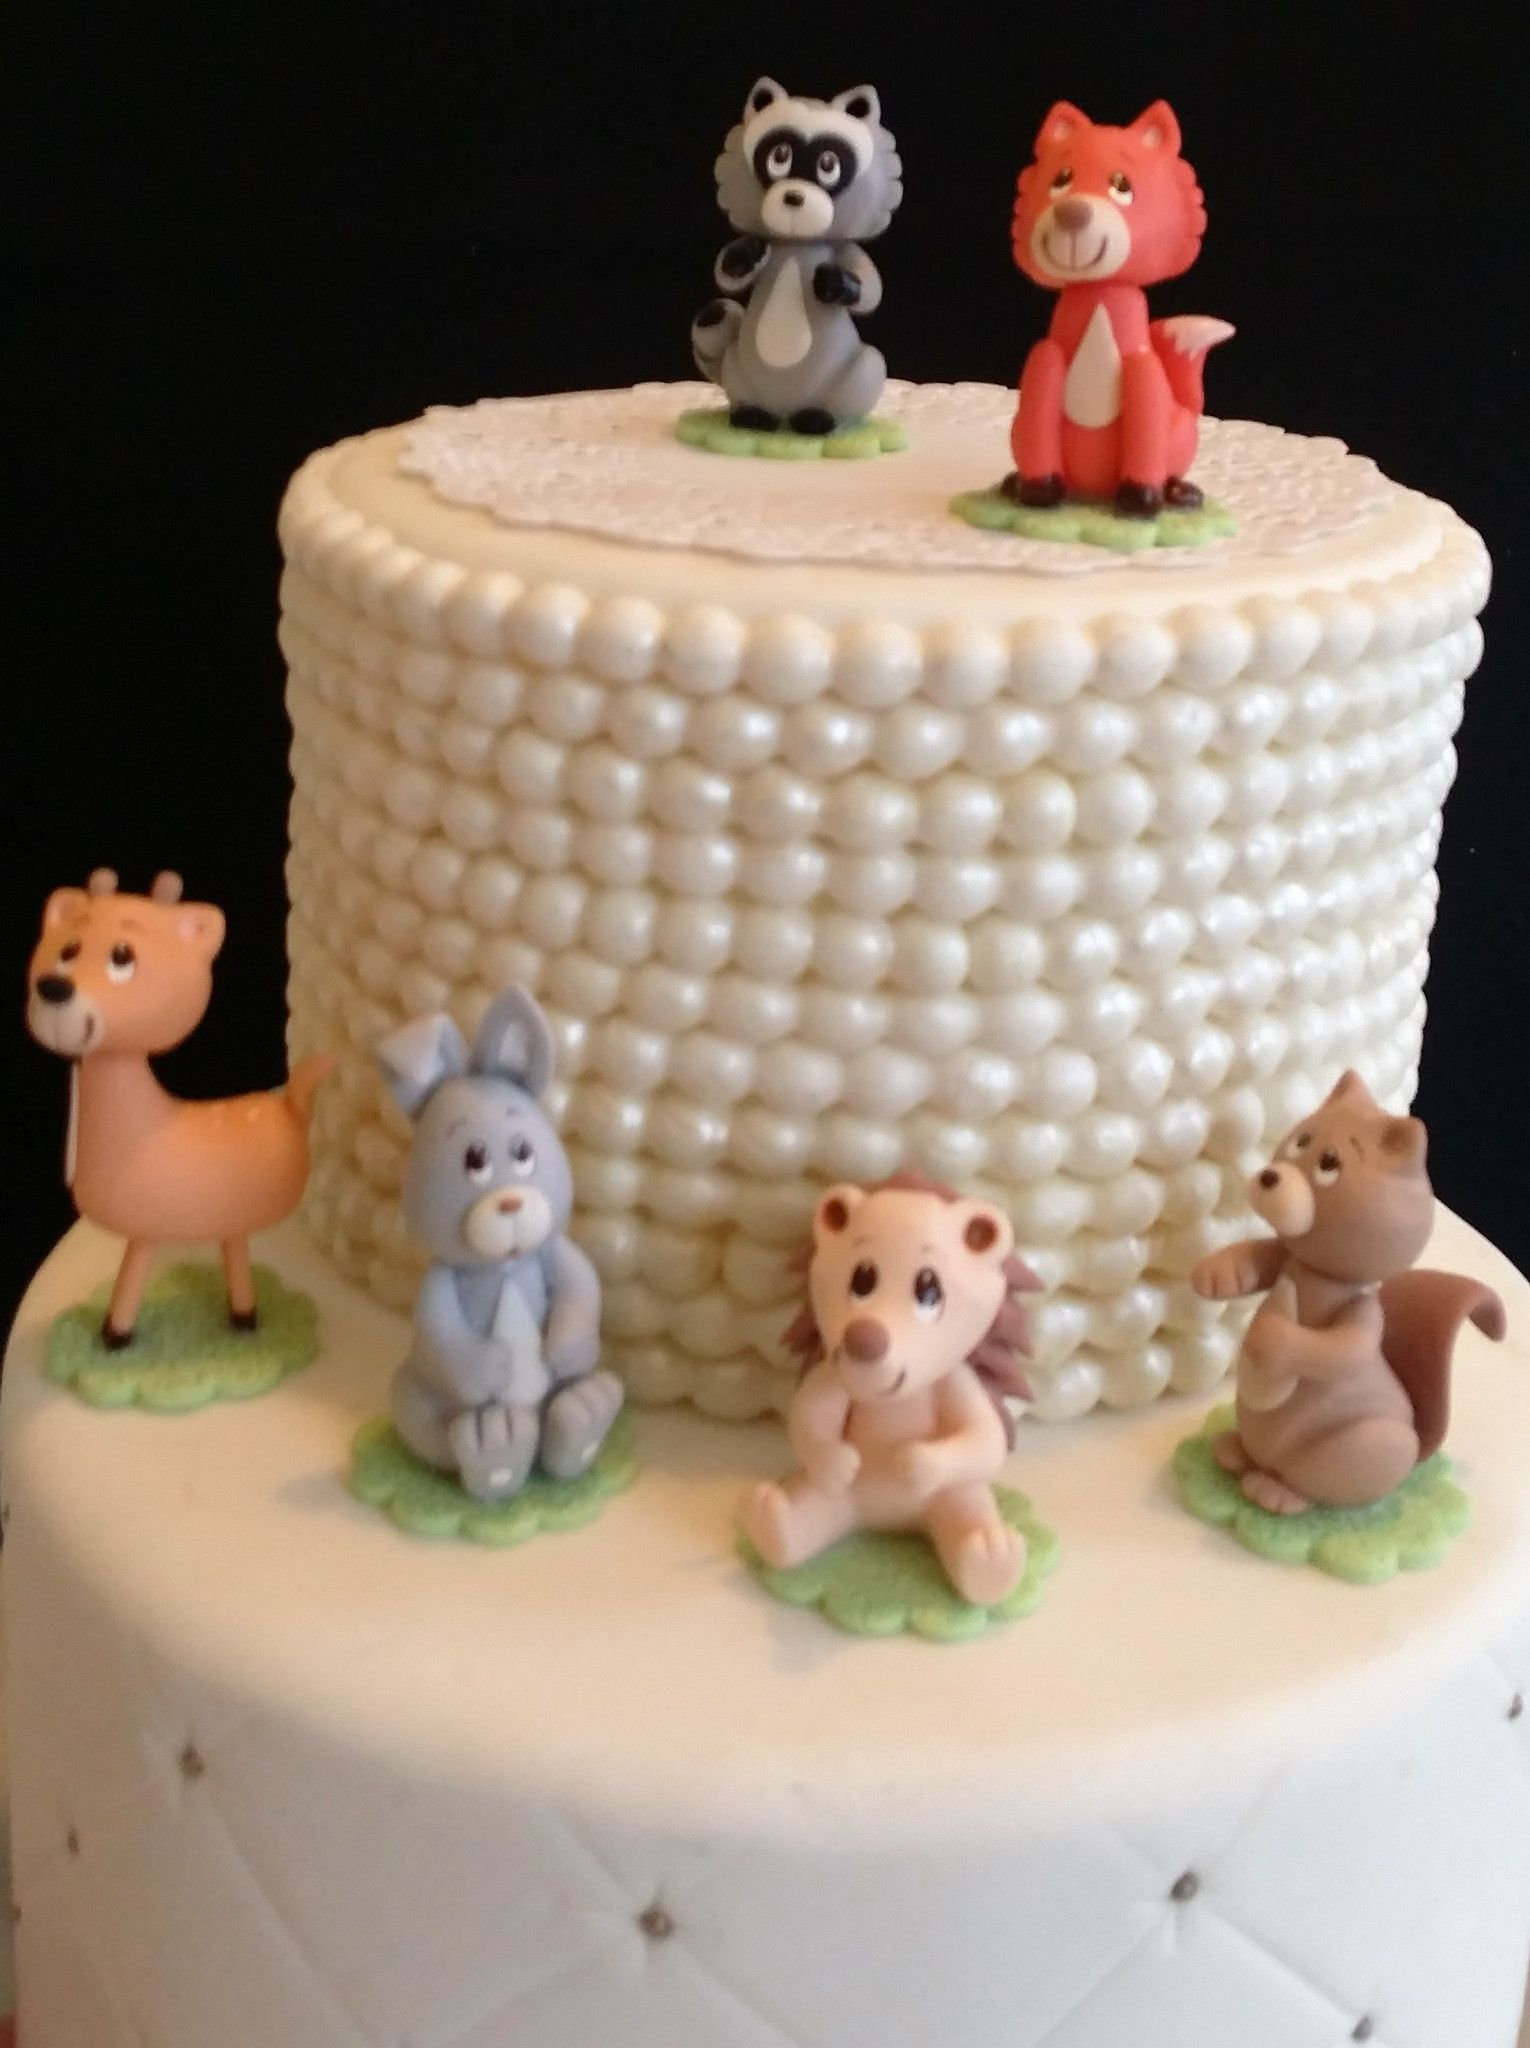 Woodland Animals Woodland Cake Toppers Forest Baby Animals Cake Decorations 6pcs Baby Shower Woodland Woodland Baby Shower Decorations Woodland Birthday Decorations